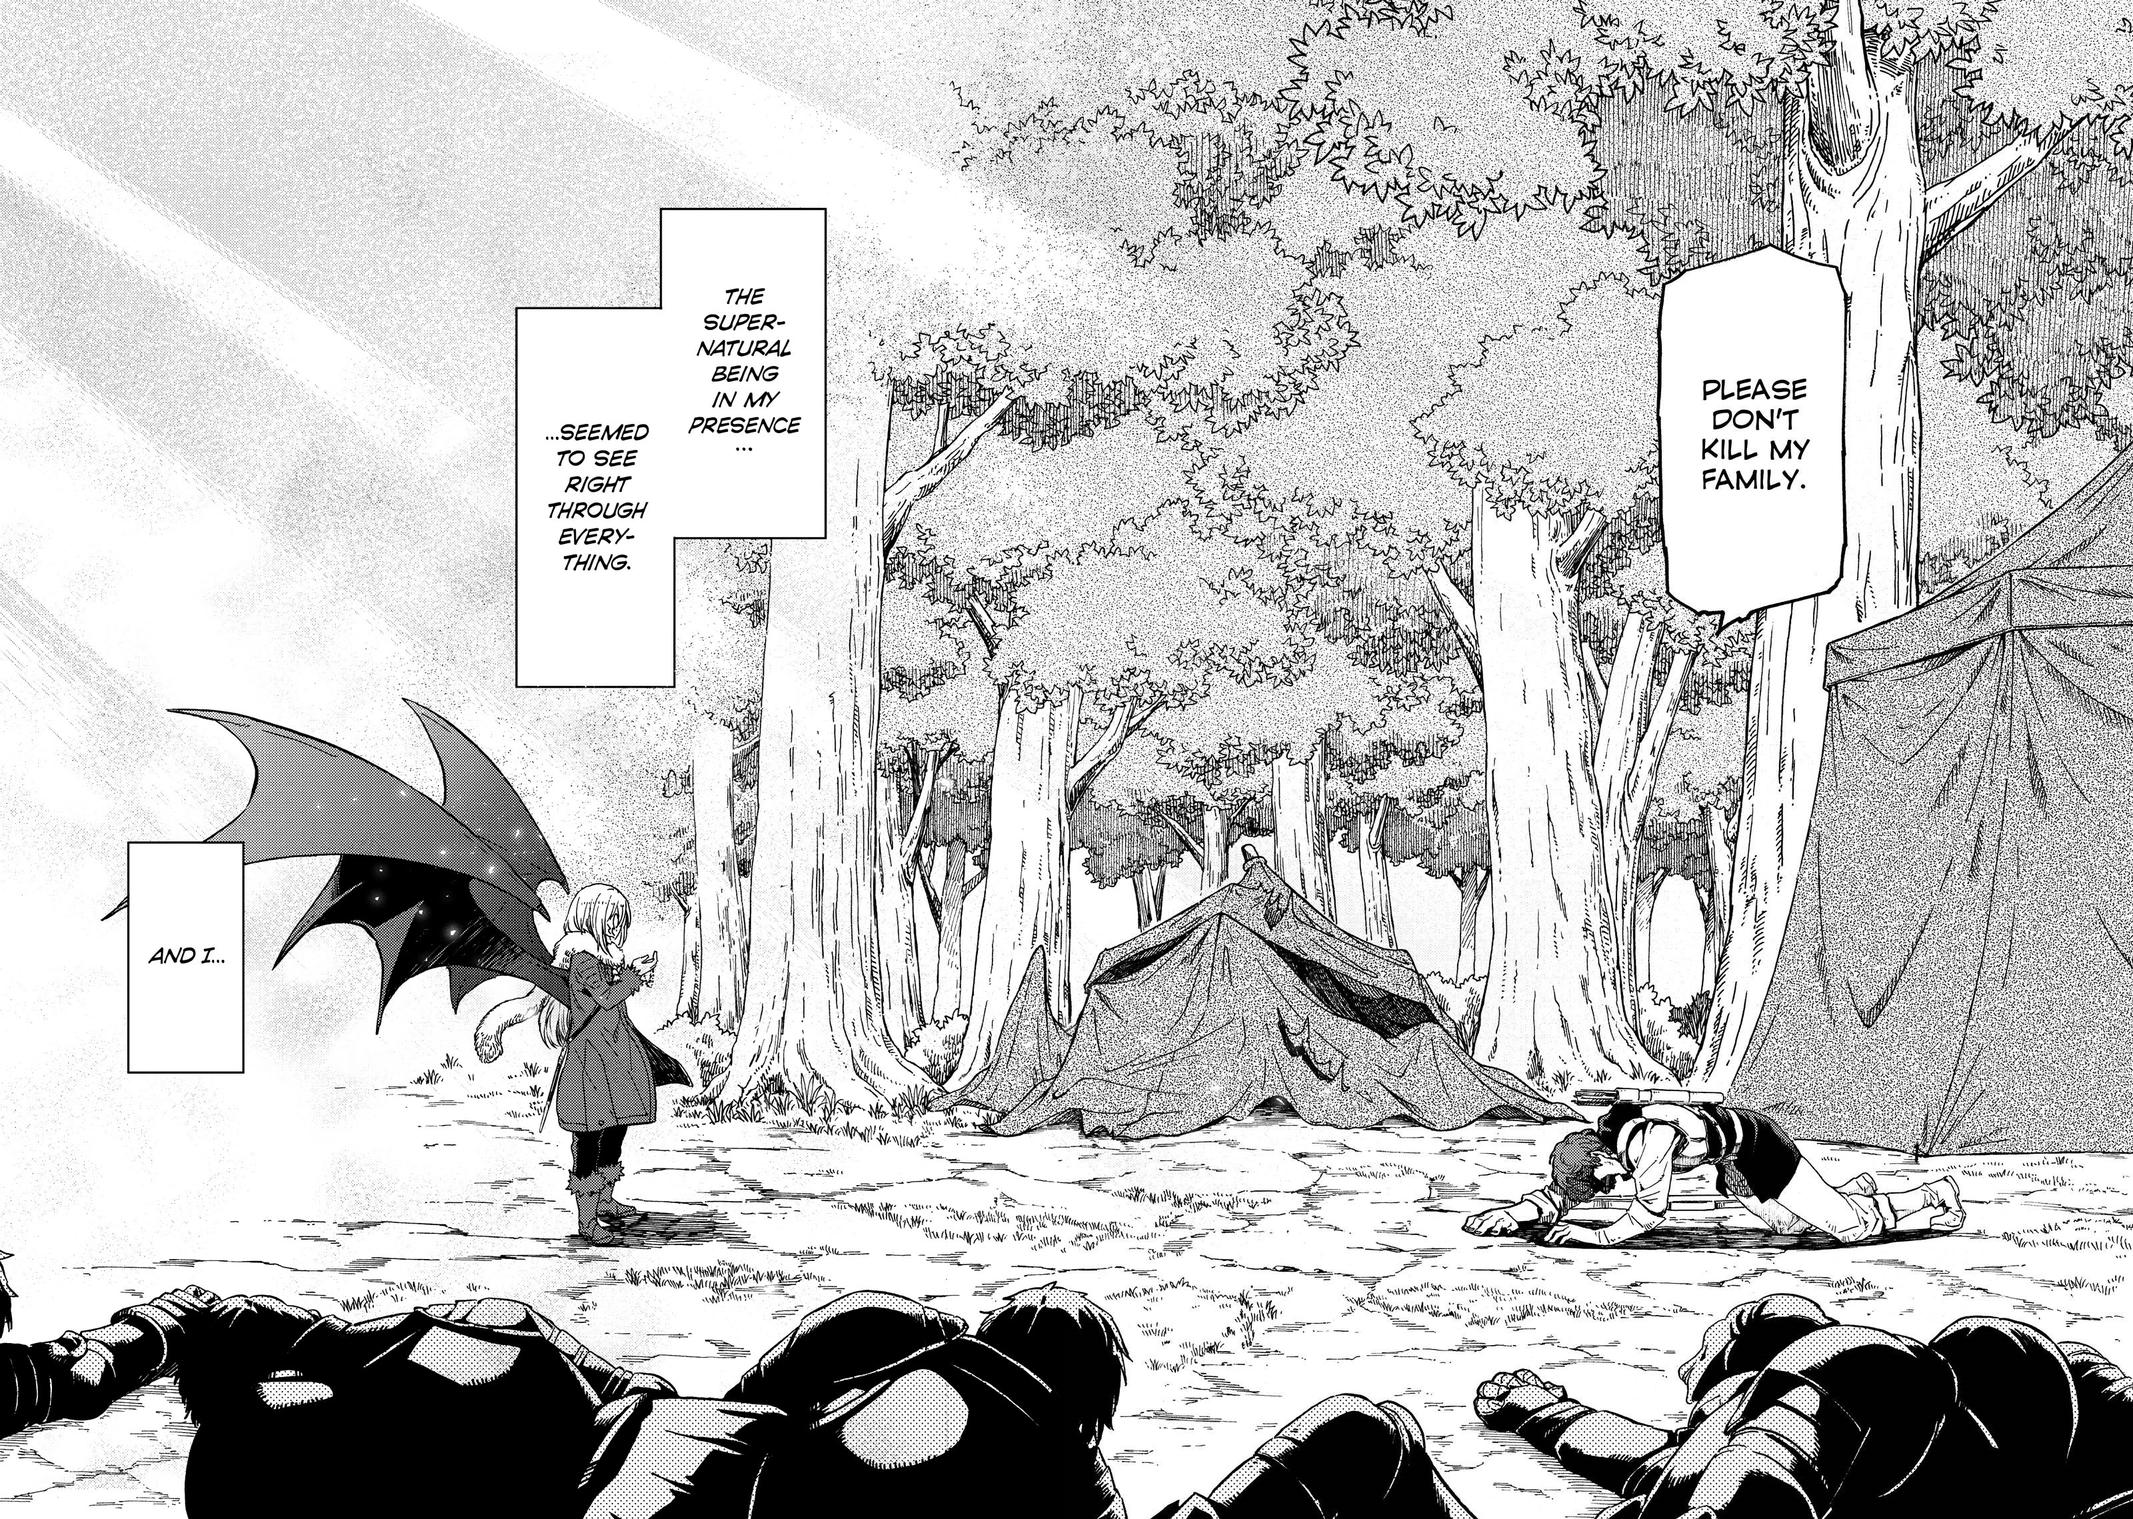 That Time I Got Reincarnated As A Slime, Chapter 70.5 image 016